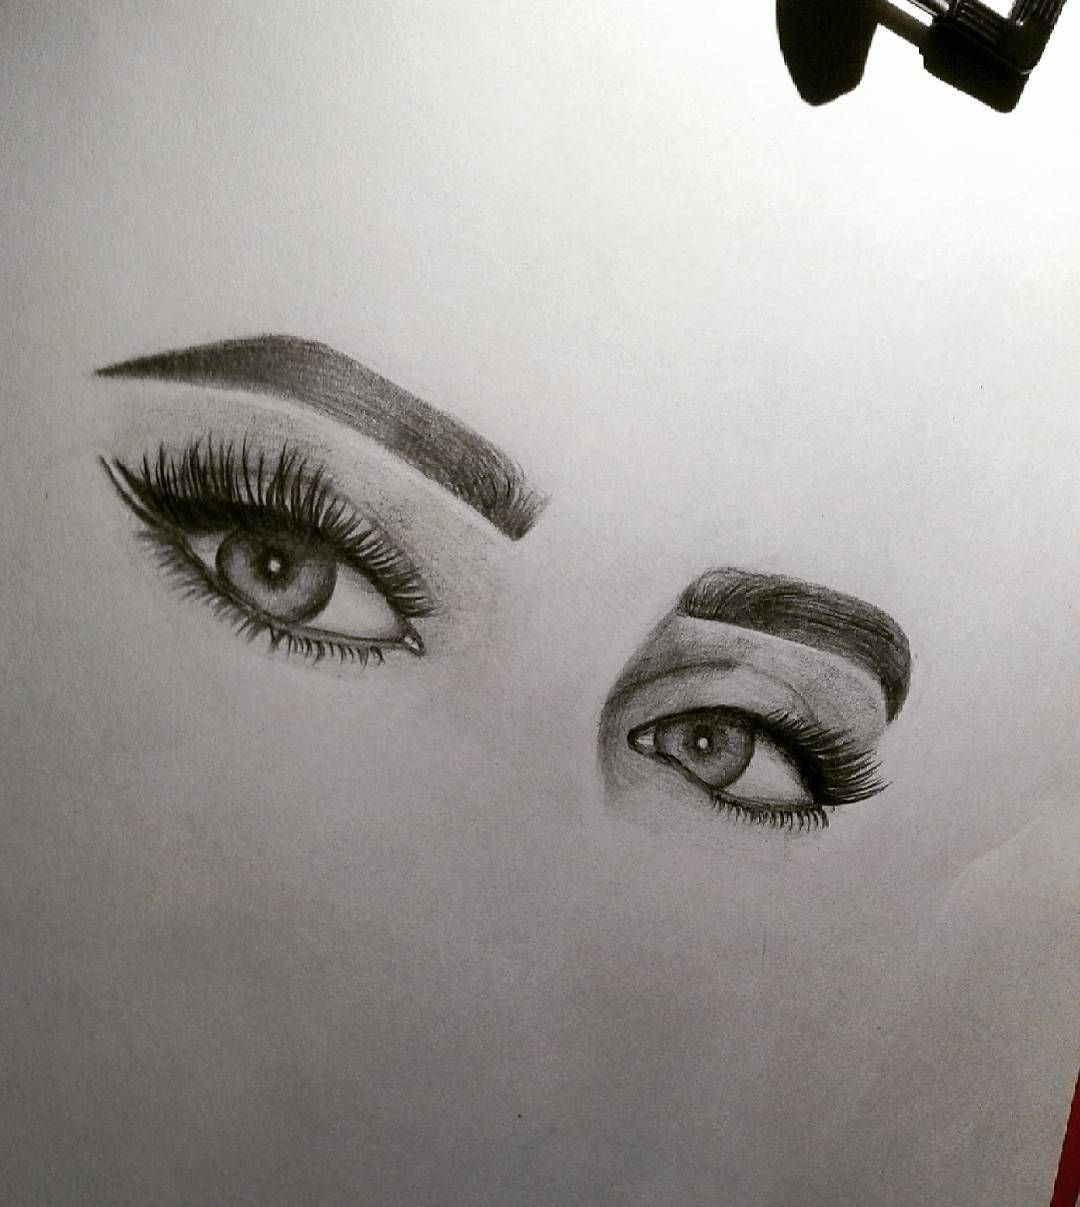 Eyes Sketch Pencildrawing Pencilart Drawoftheday Wewholeart رسم عيون عيون سكتش رسم Eye Sketch Pencil Drawings Drawings